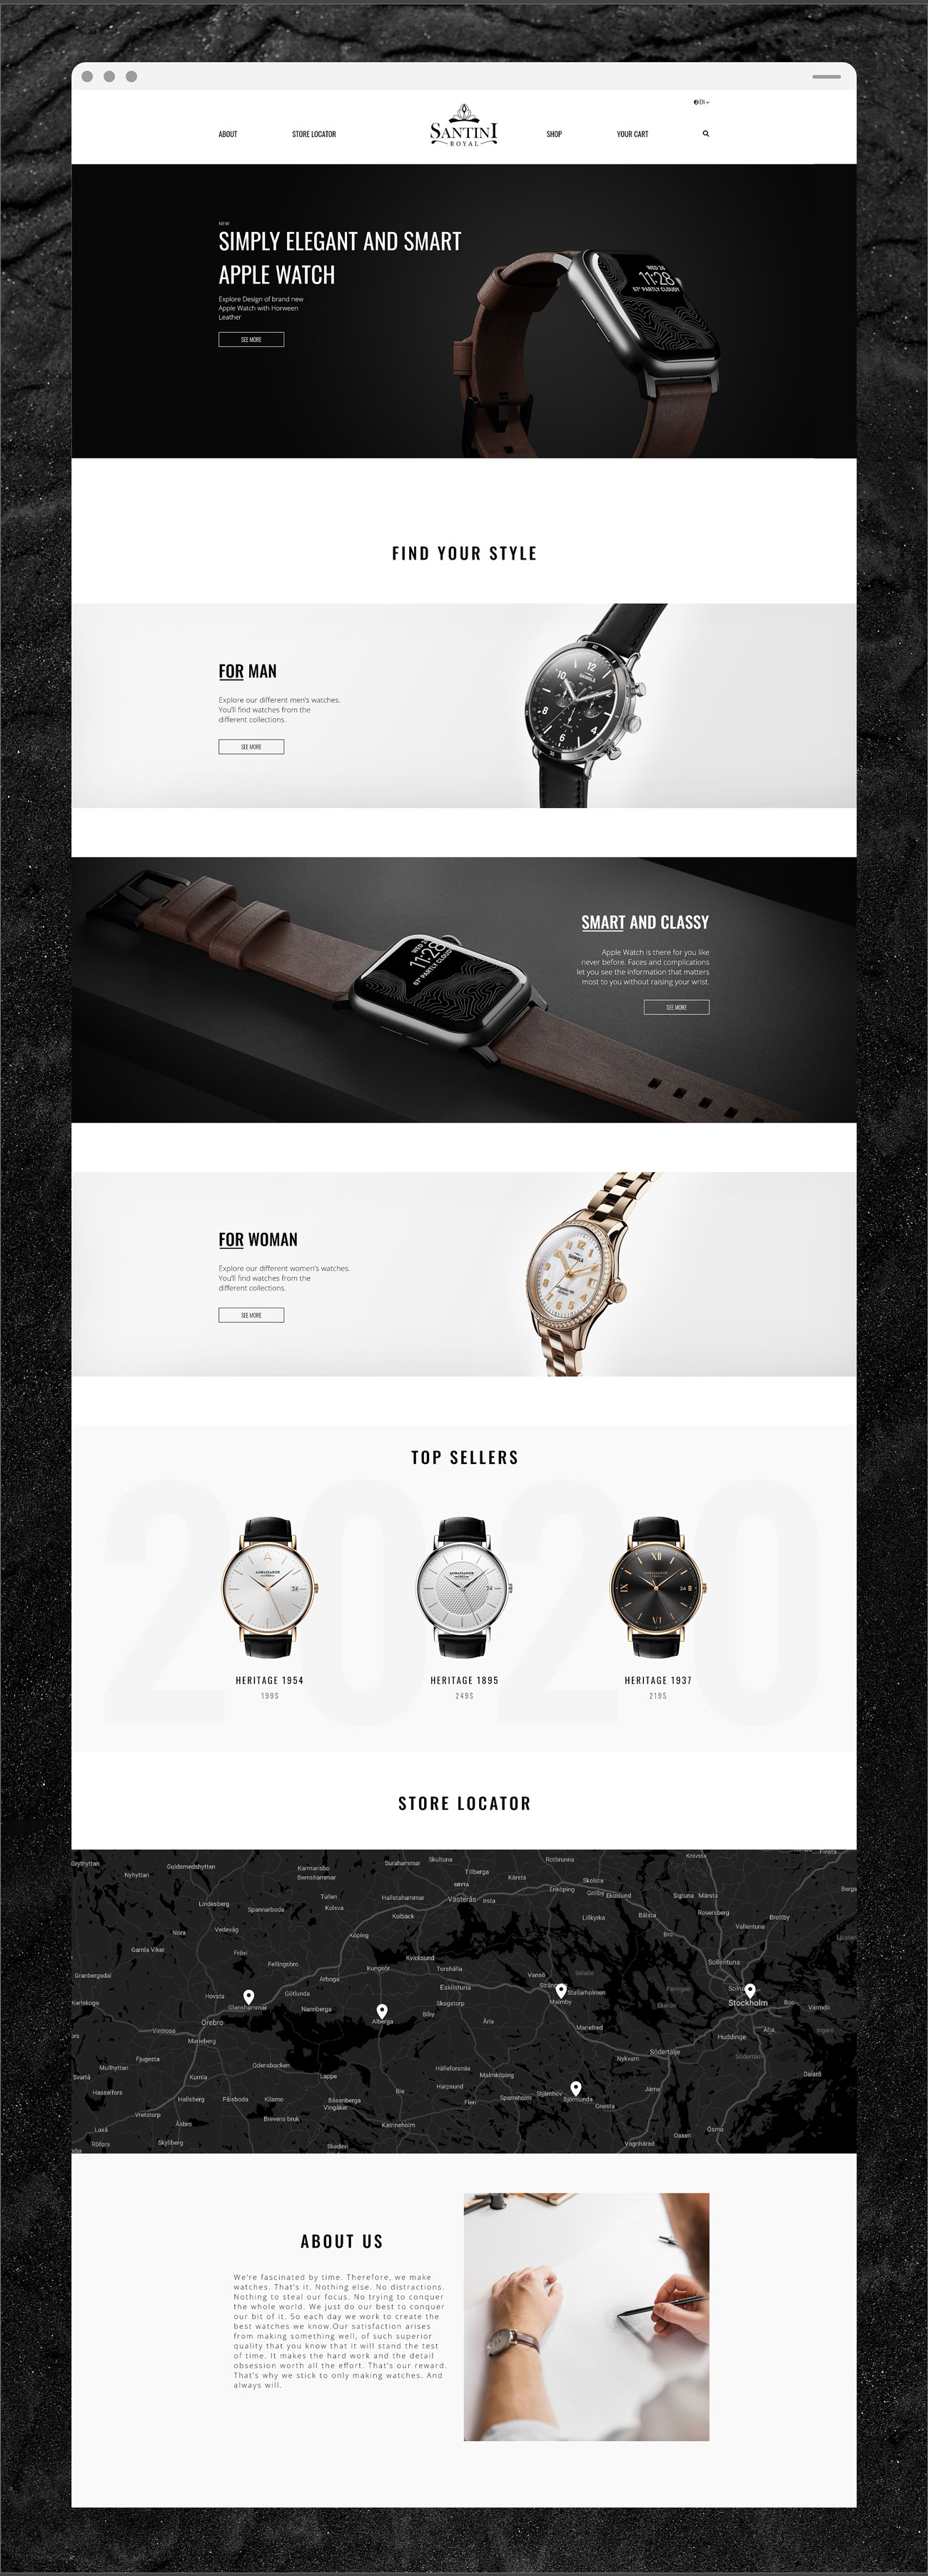 Santini Royal Case Study Full Landing Page Showcase